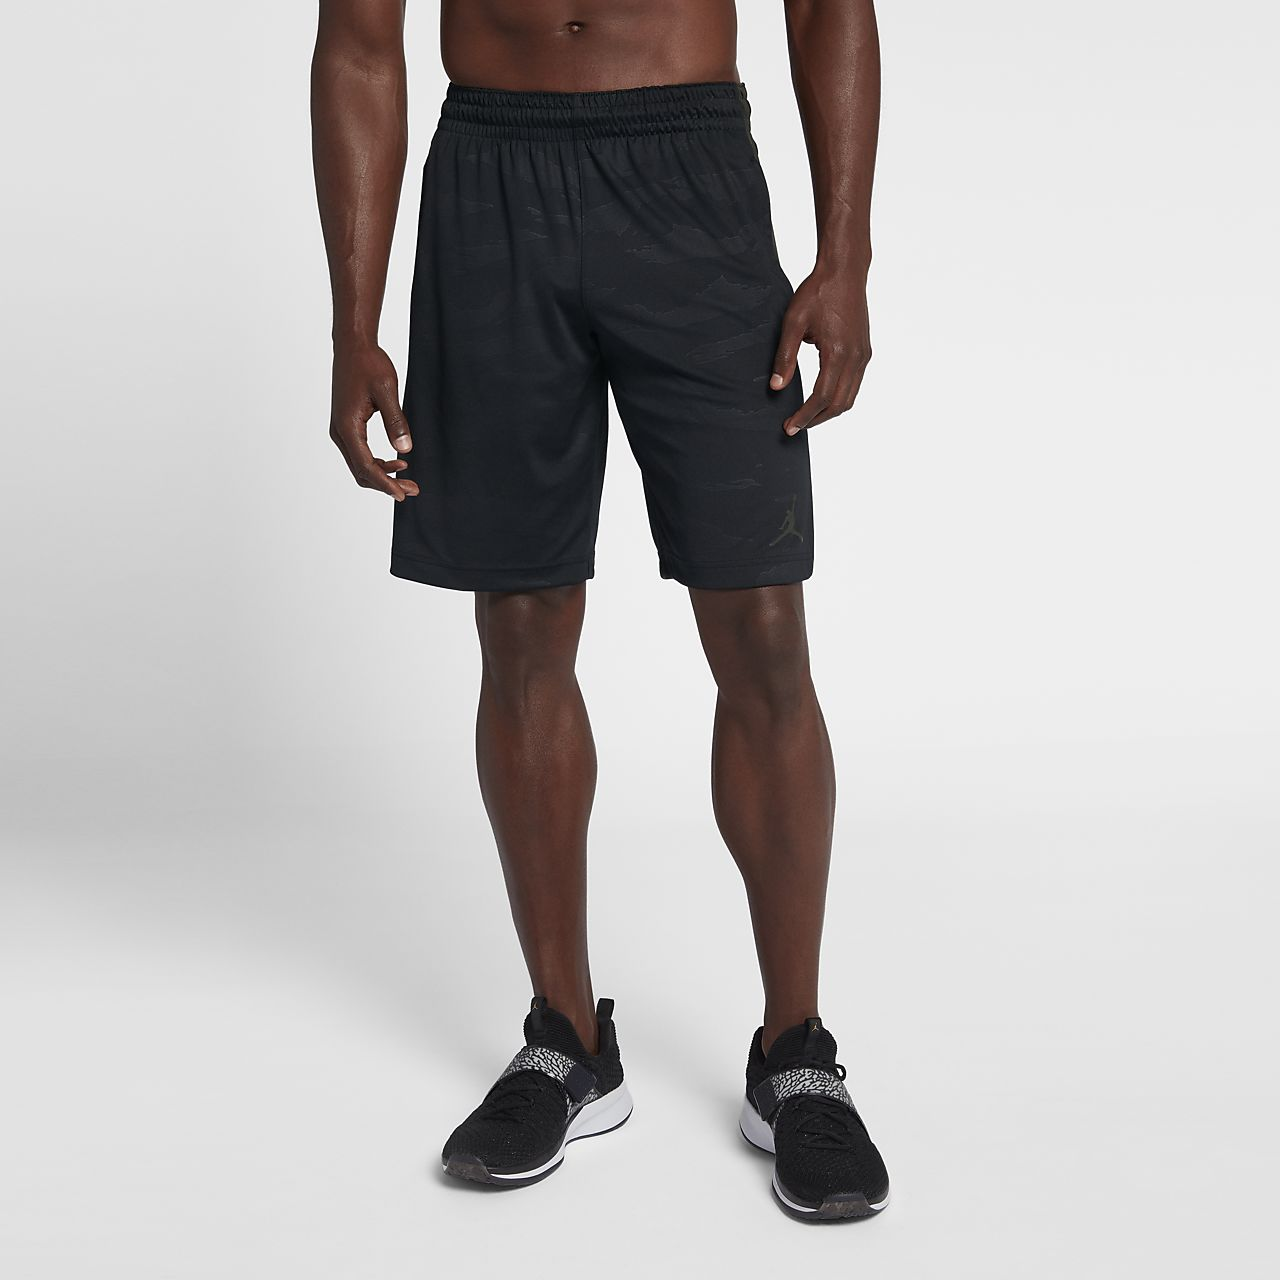 c94e9e0dc05 Jordan Dri-FIT 23 Alpha Men's Knit Printed Training Shorts. Nike.com IN